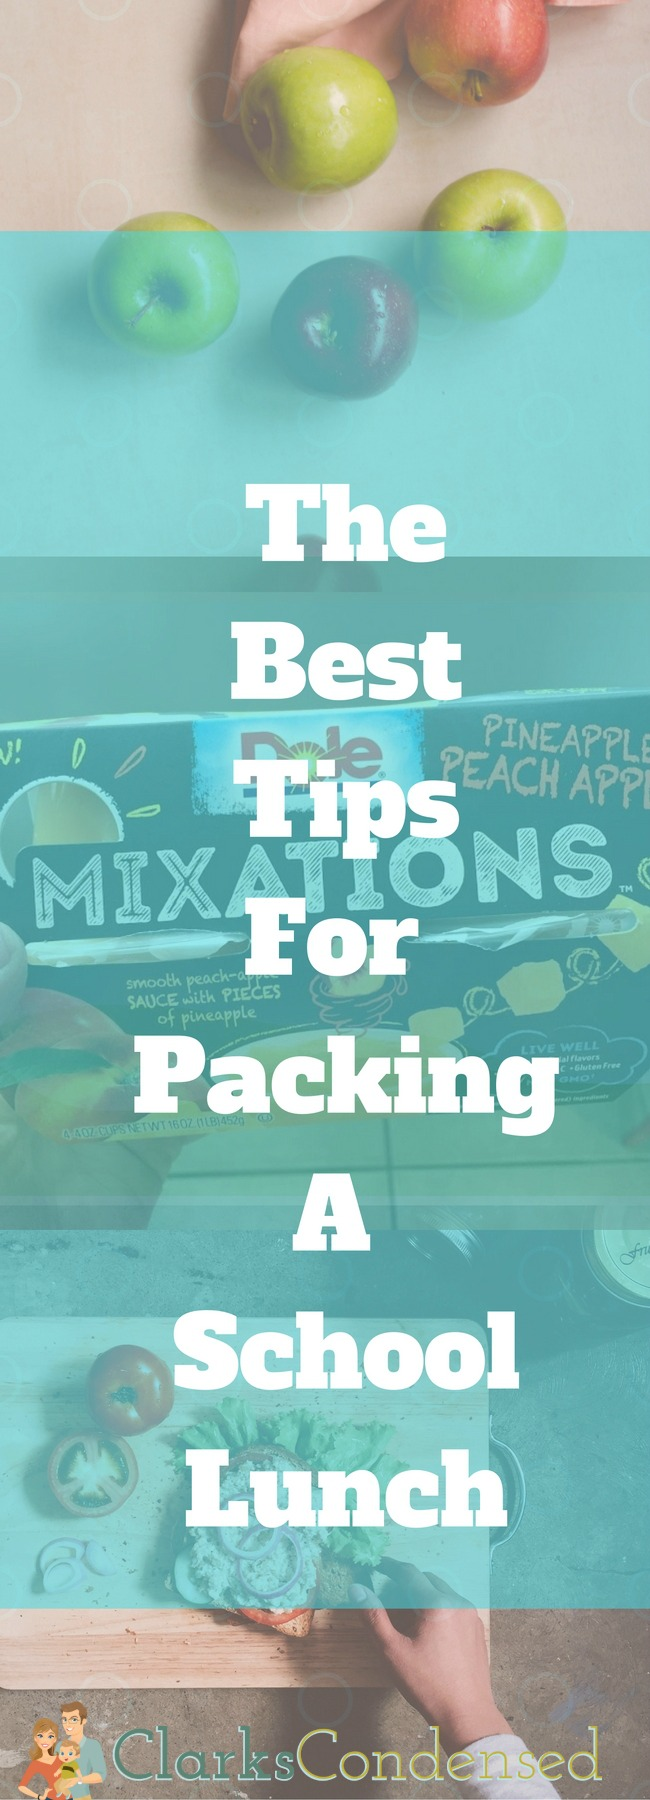 The Best Tips for Packing a School Lunch via @clarkscondensed